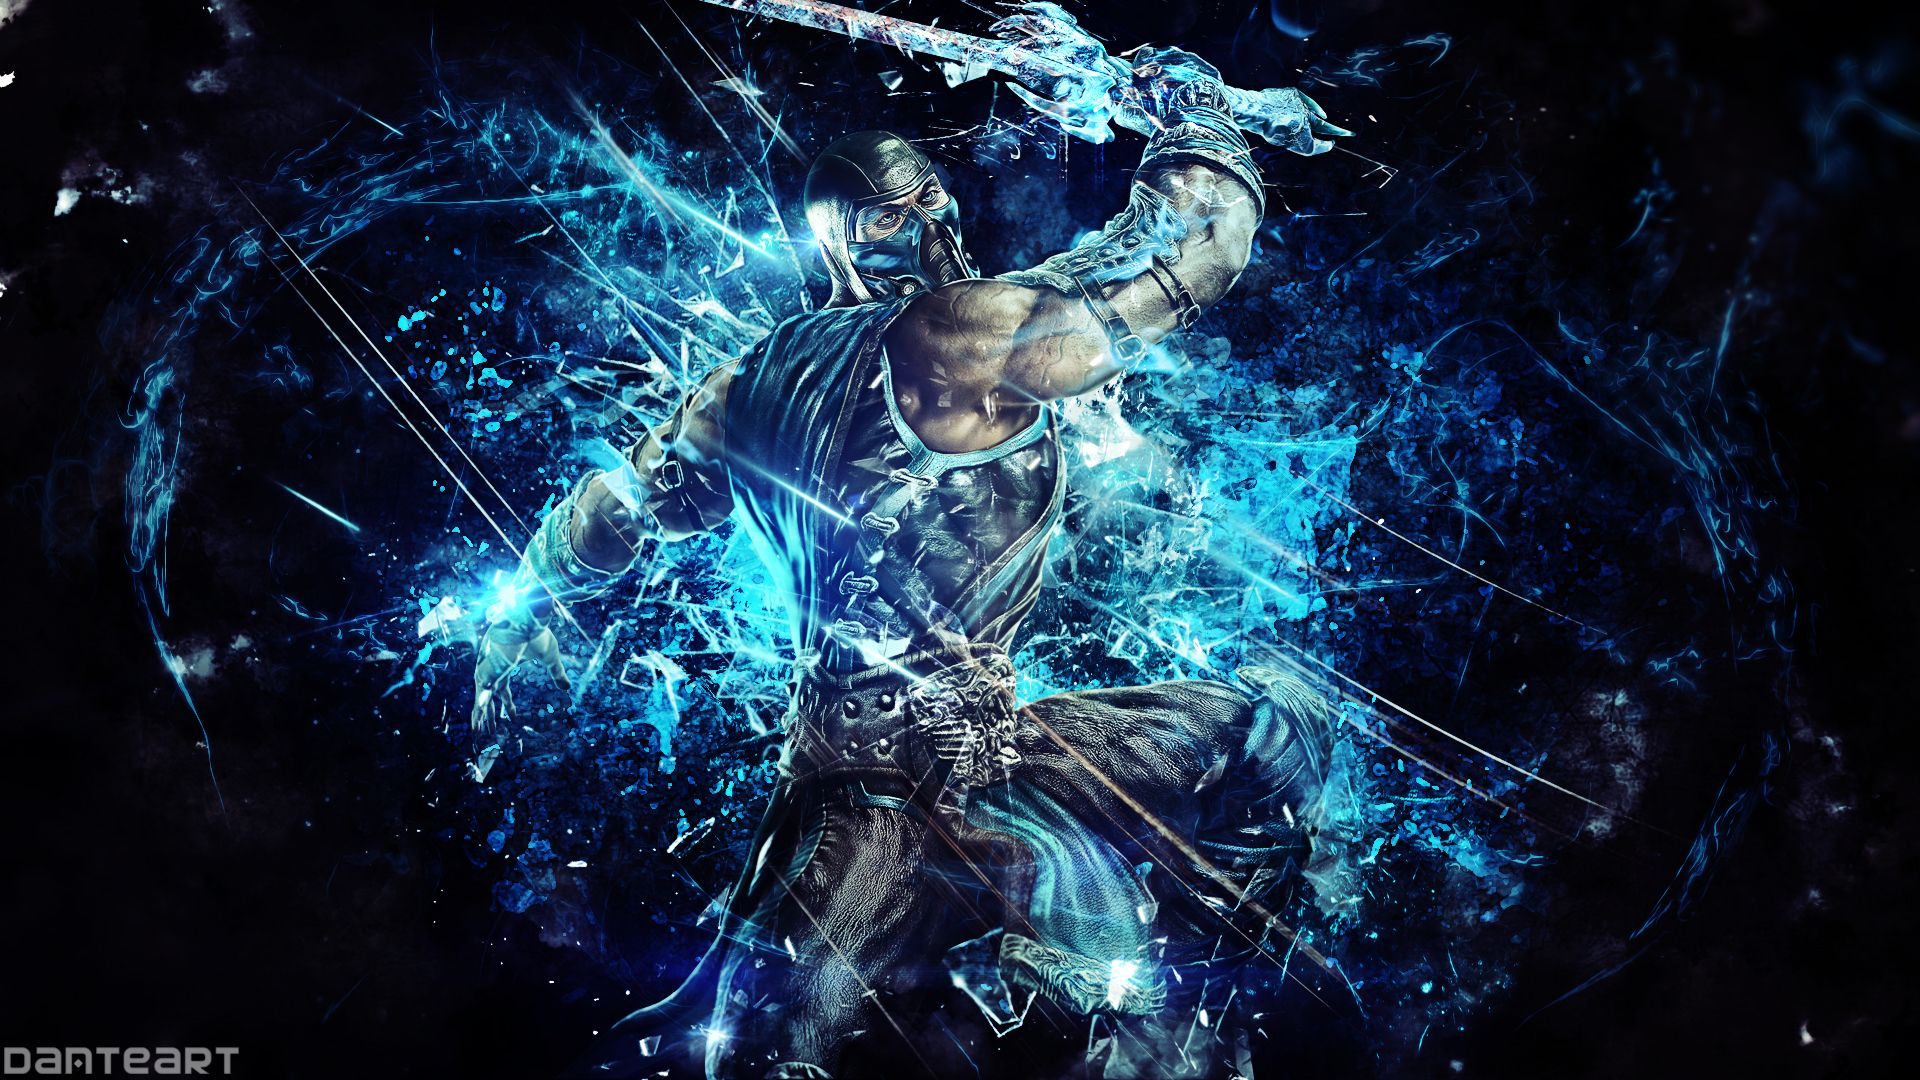 Original Mortal Kombat Scorpion Sub Zero Google Search Mortal